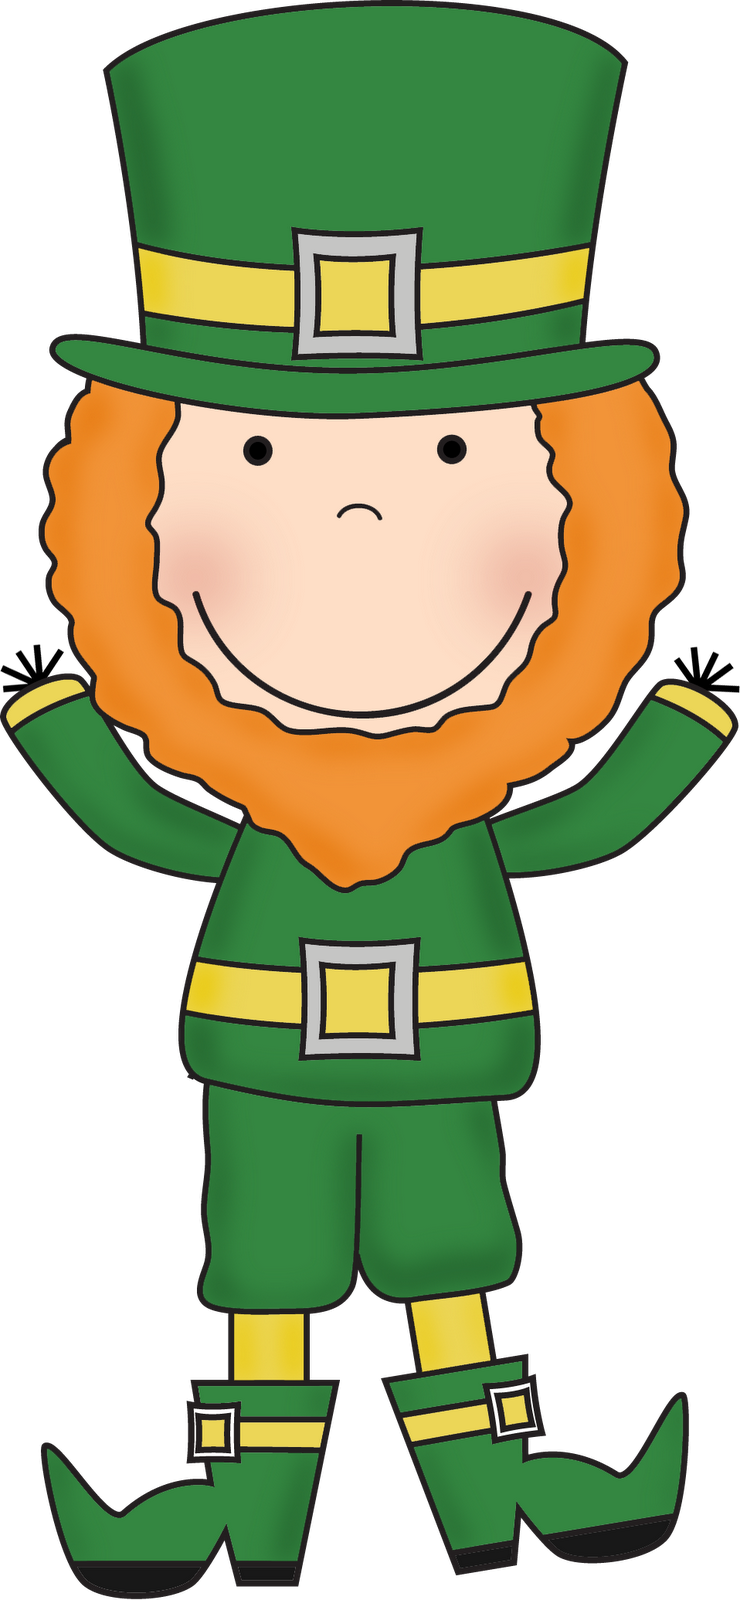 Lucky the leprechaun clipart png royalty free library Cute Leprechaun Clipart | Free download best Cute Leprechaun ... png royalty free library